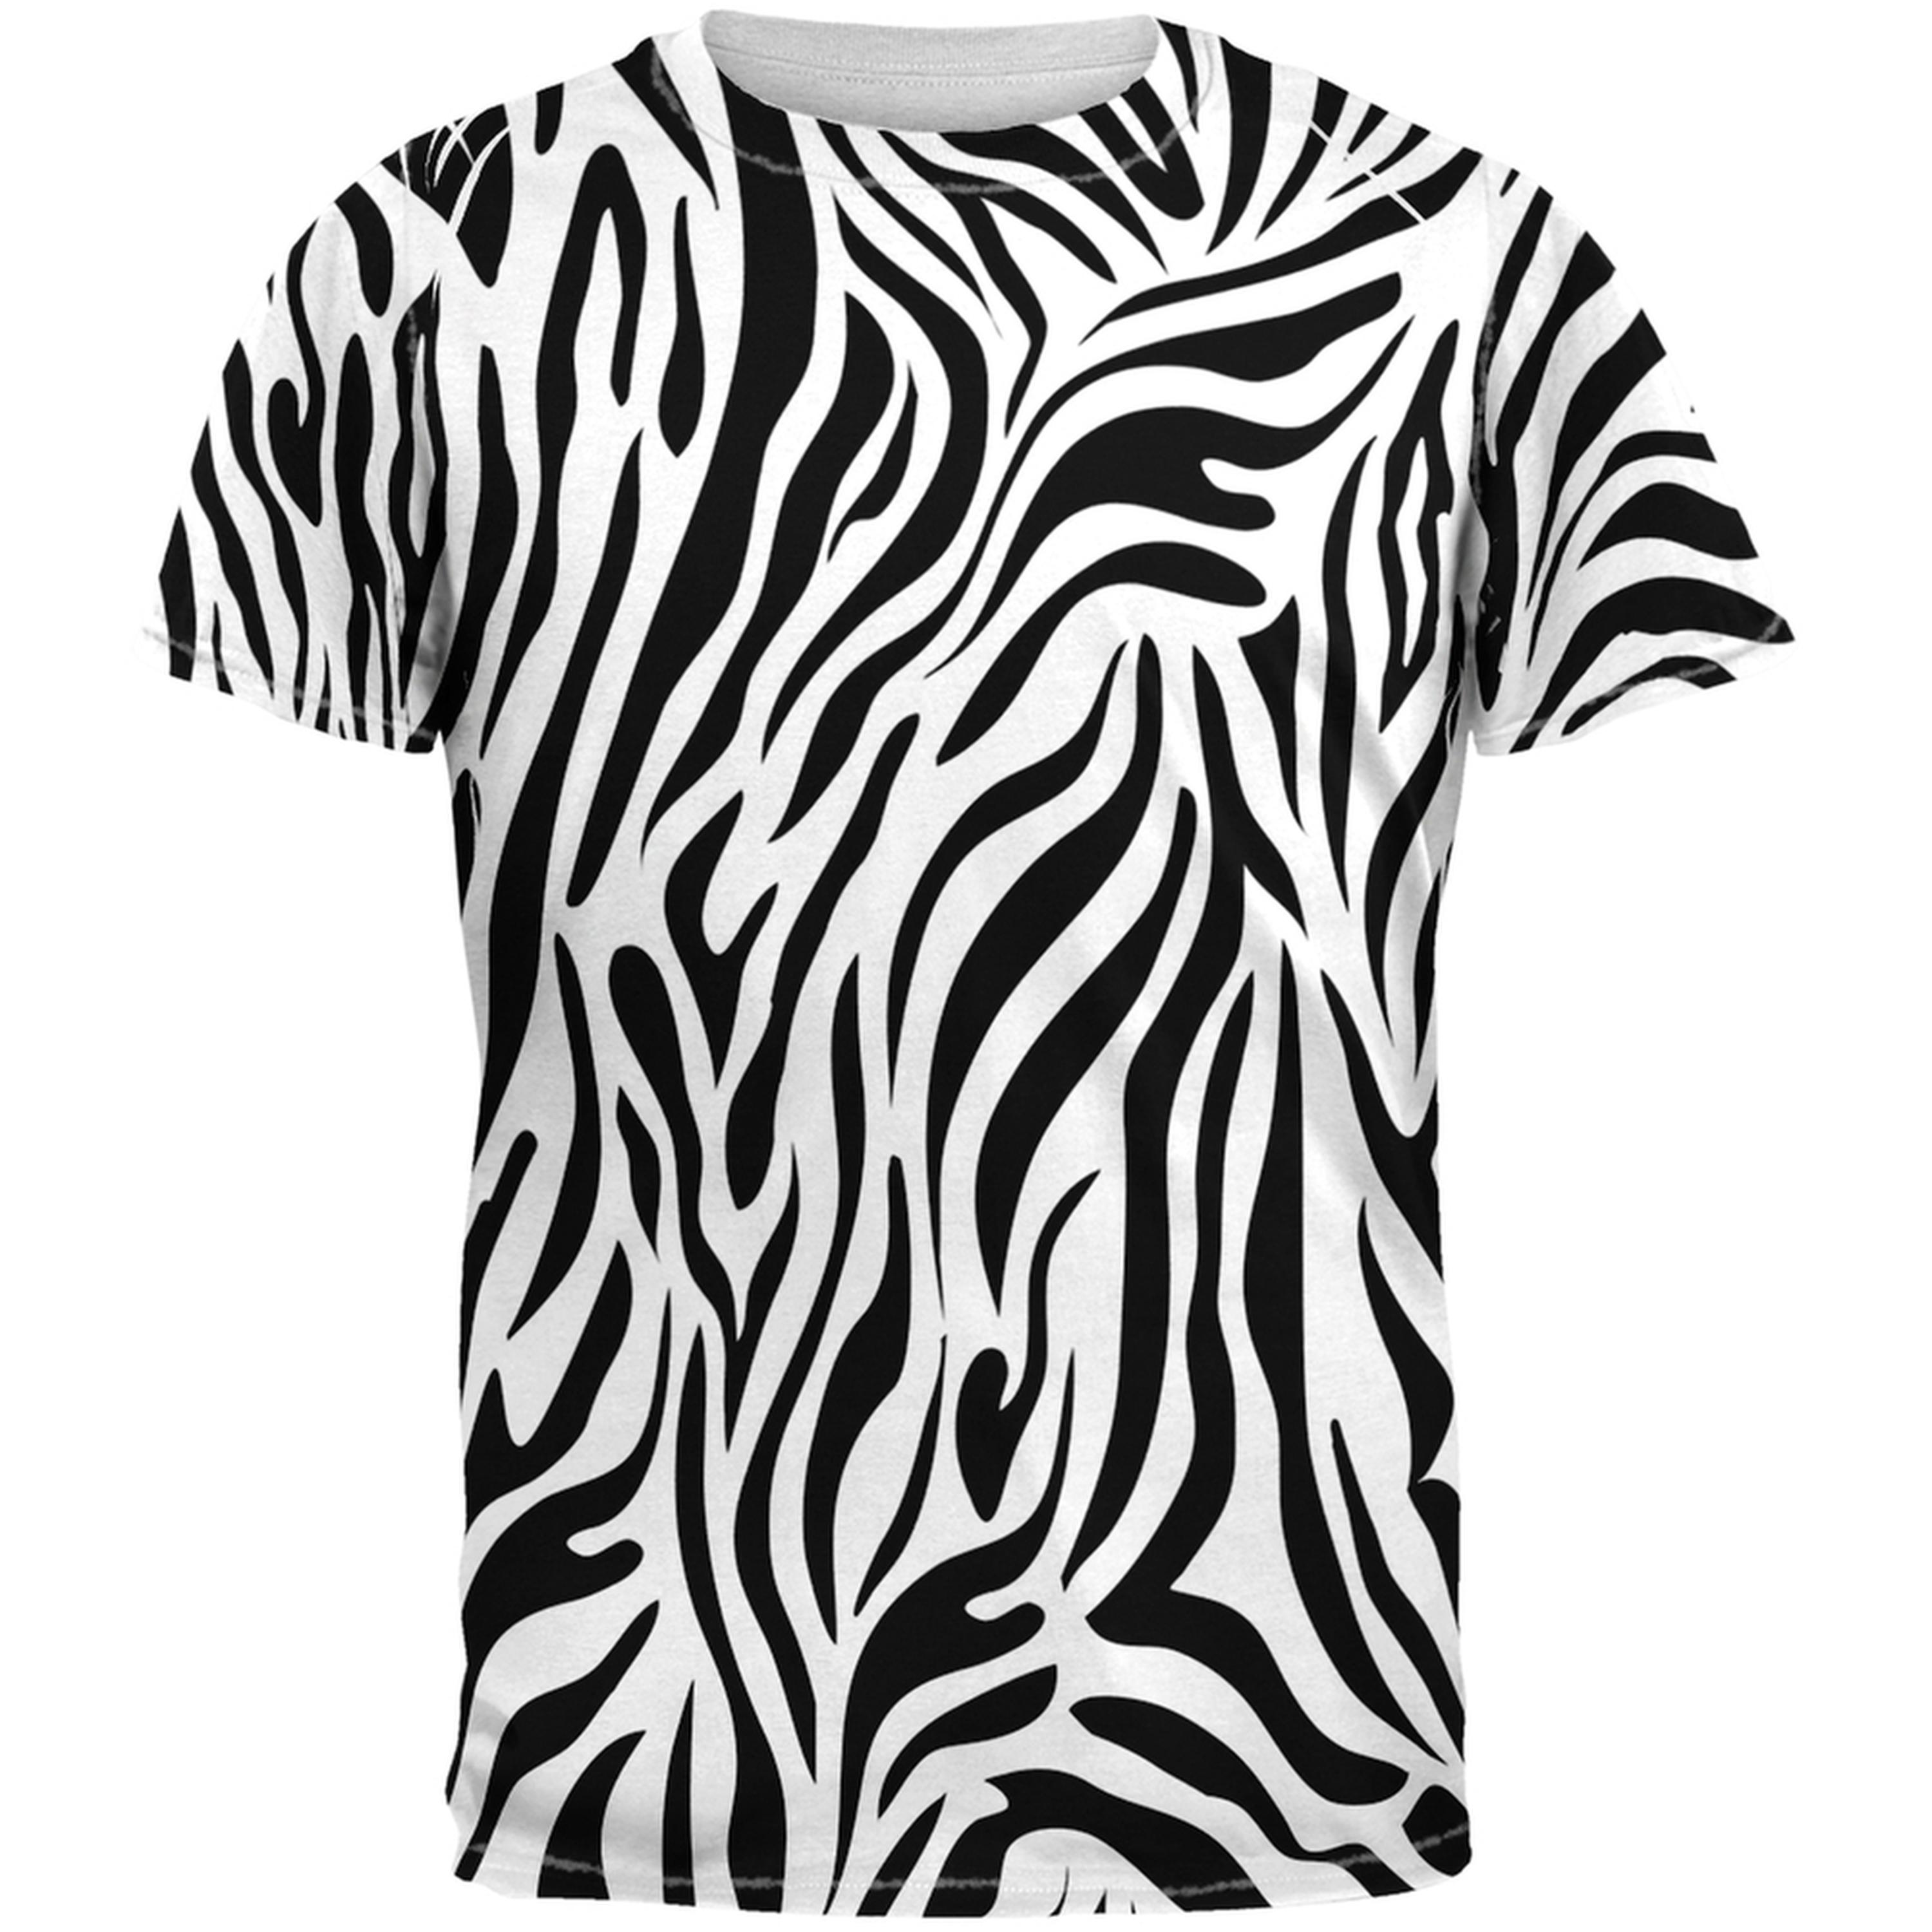 Zebra Print White Sublimated Adult T-Shirt